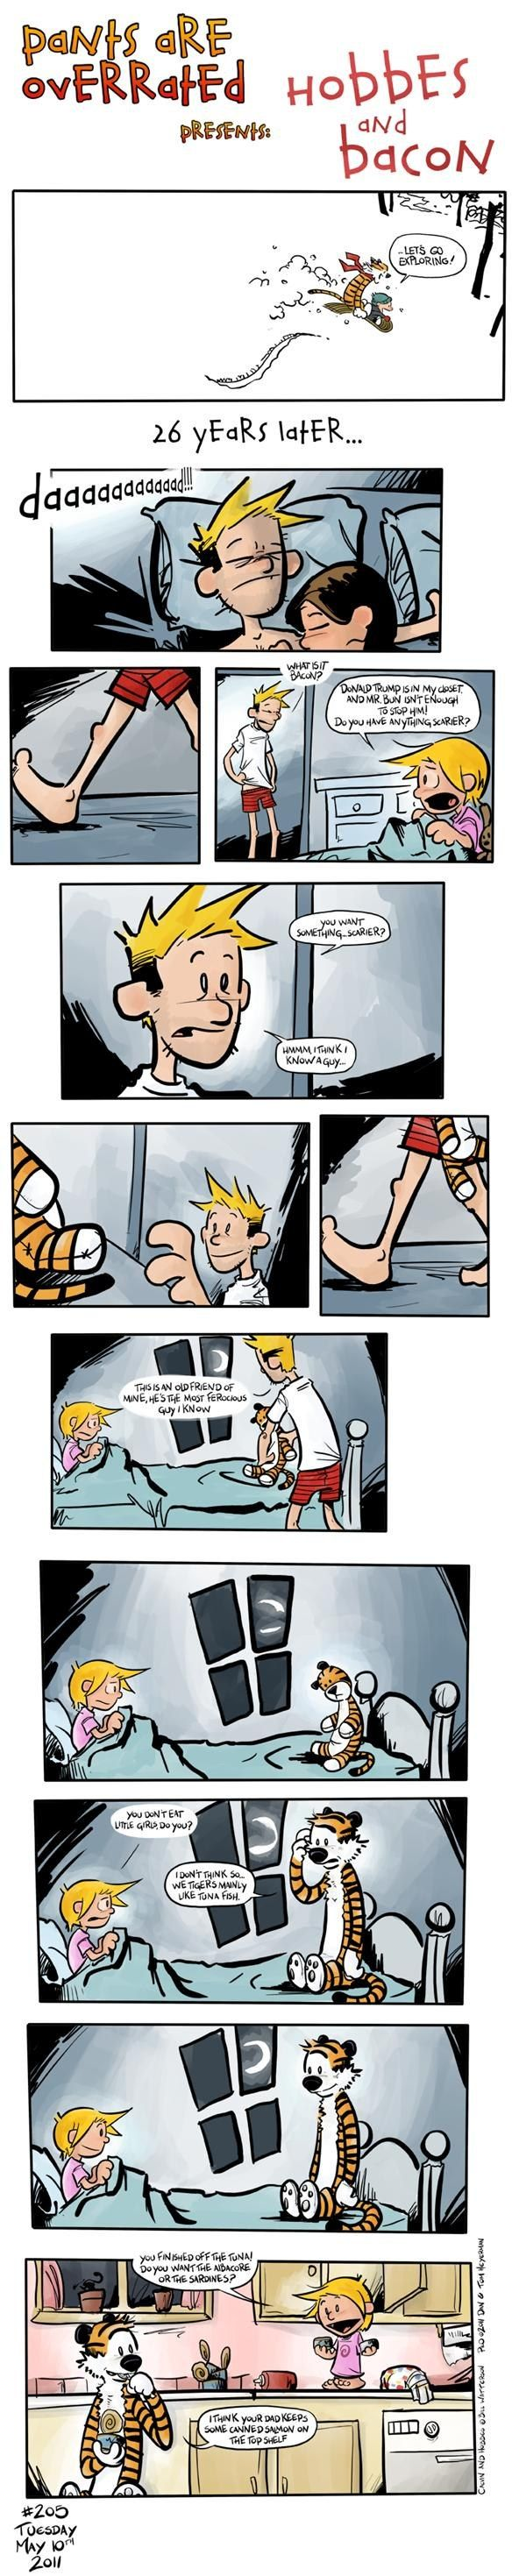 Pants Are Overrated: Calvin & Hobbes All Grown Up!